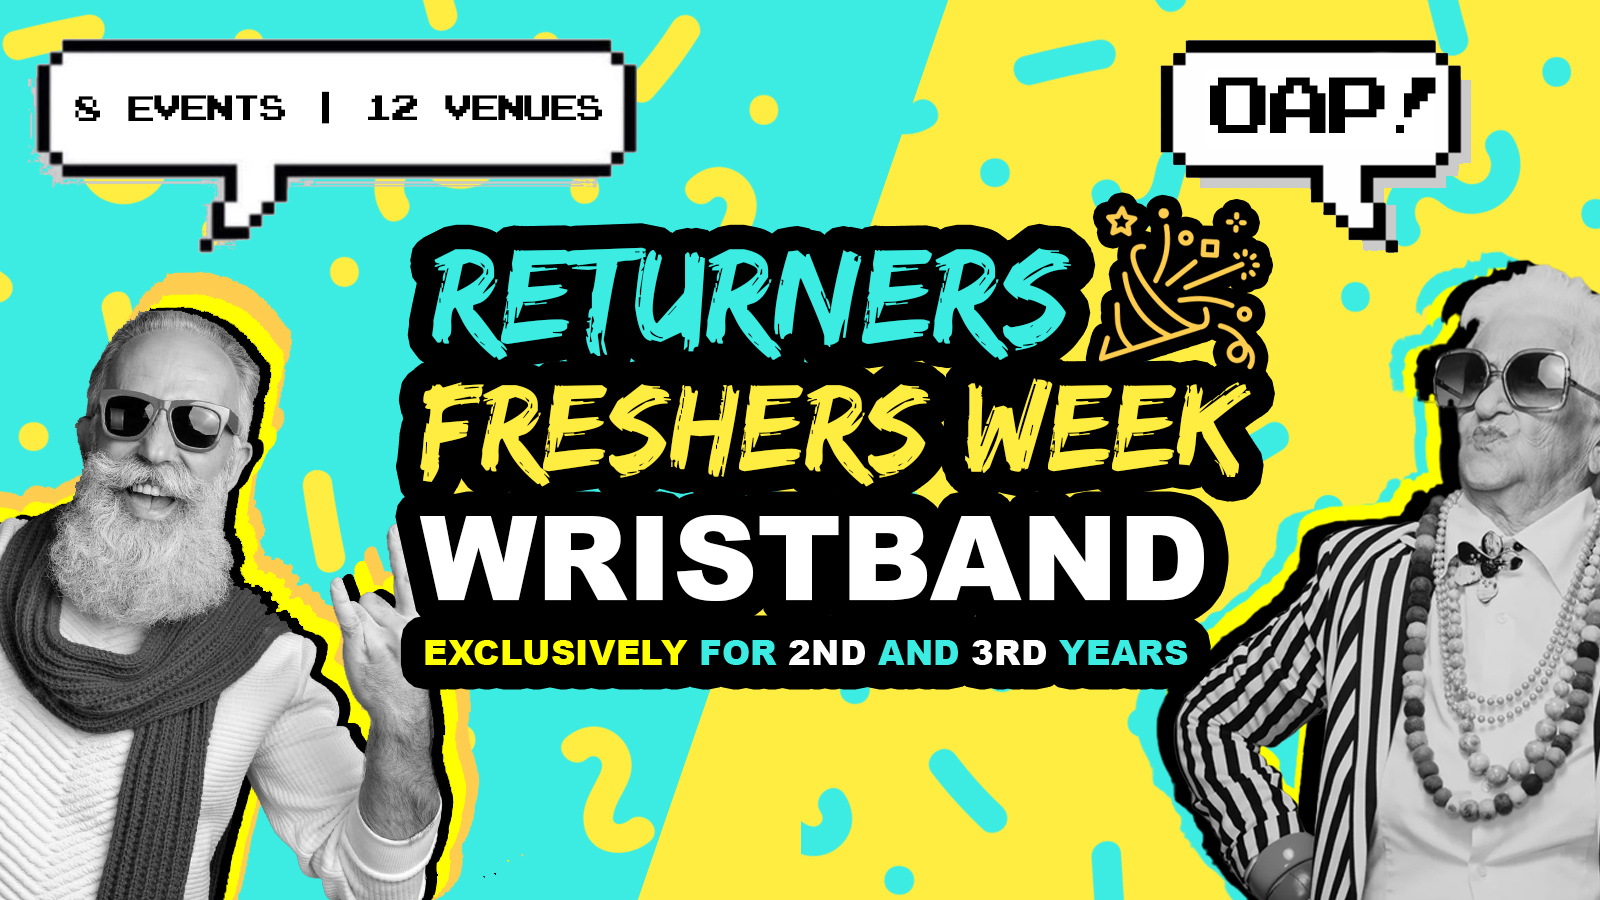 Manchester Returners Freshers Week Wristband 2021 | Exclusive for 2nd & 3rd Years